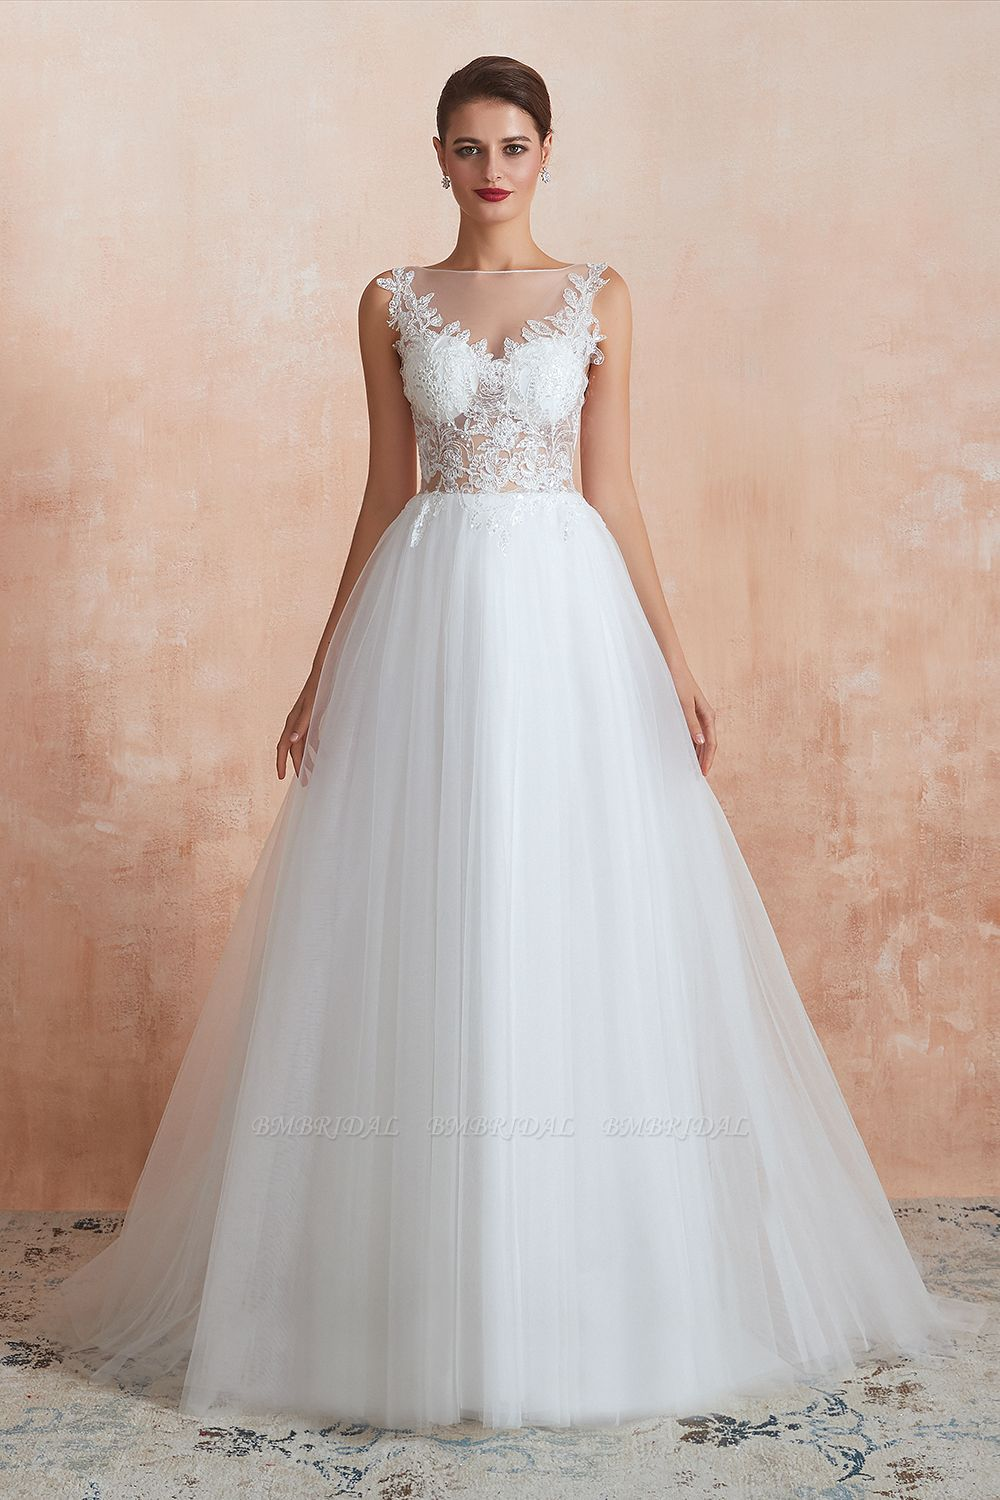 Exquisite Sequins White Tulle Cheap Wedding Dresses with Appliques